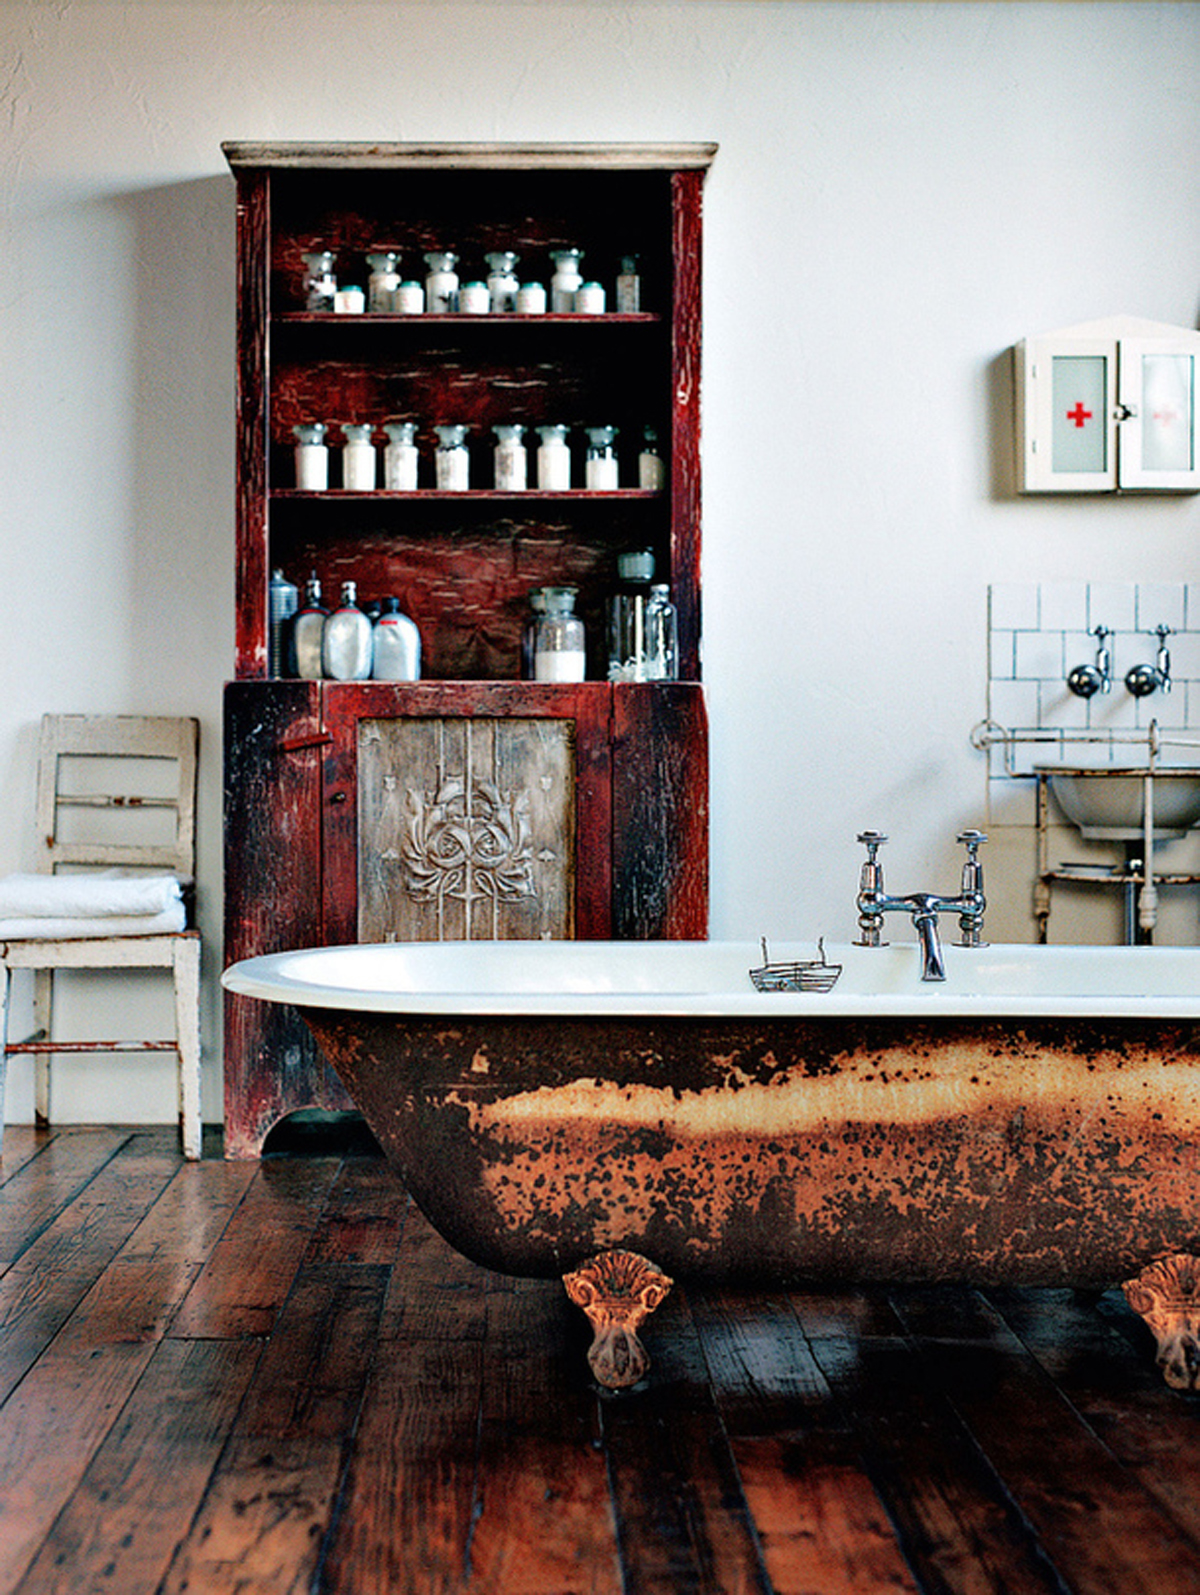 Antique bathroom ideas for Antique bathroom decorating ideas